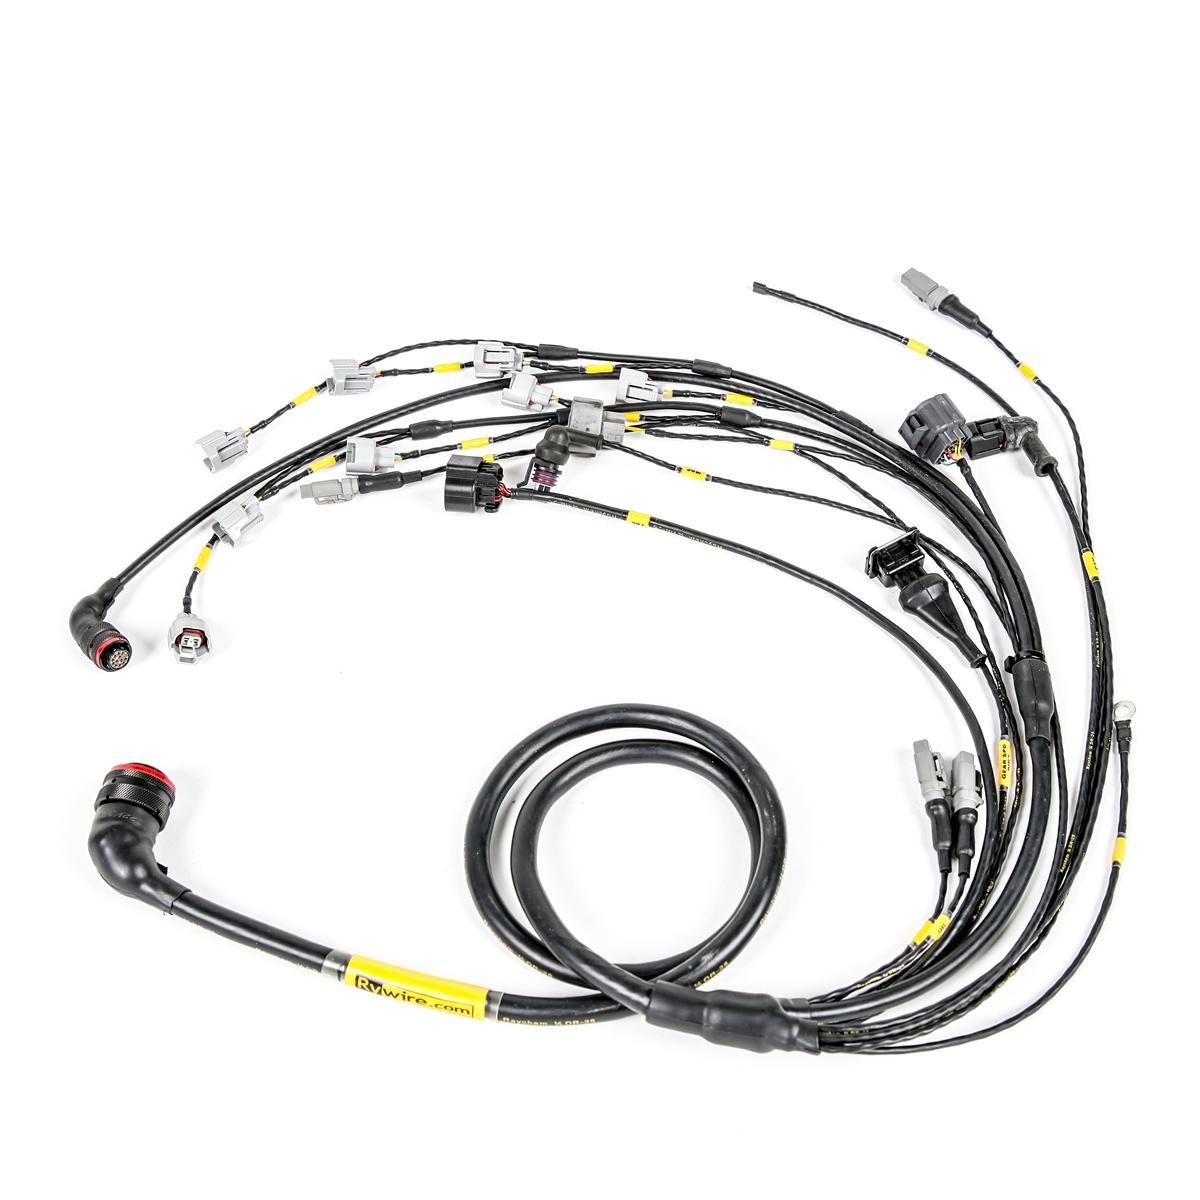 mil spec custom harness 5?1426680579 rywire com mil spec custom engine harness Custom Automotive Wiring Components at aneh.co